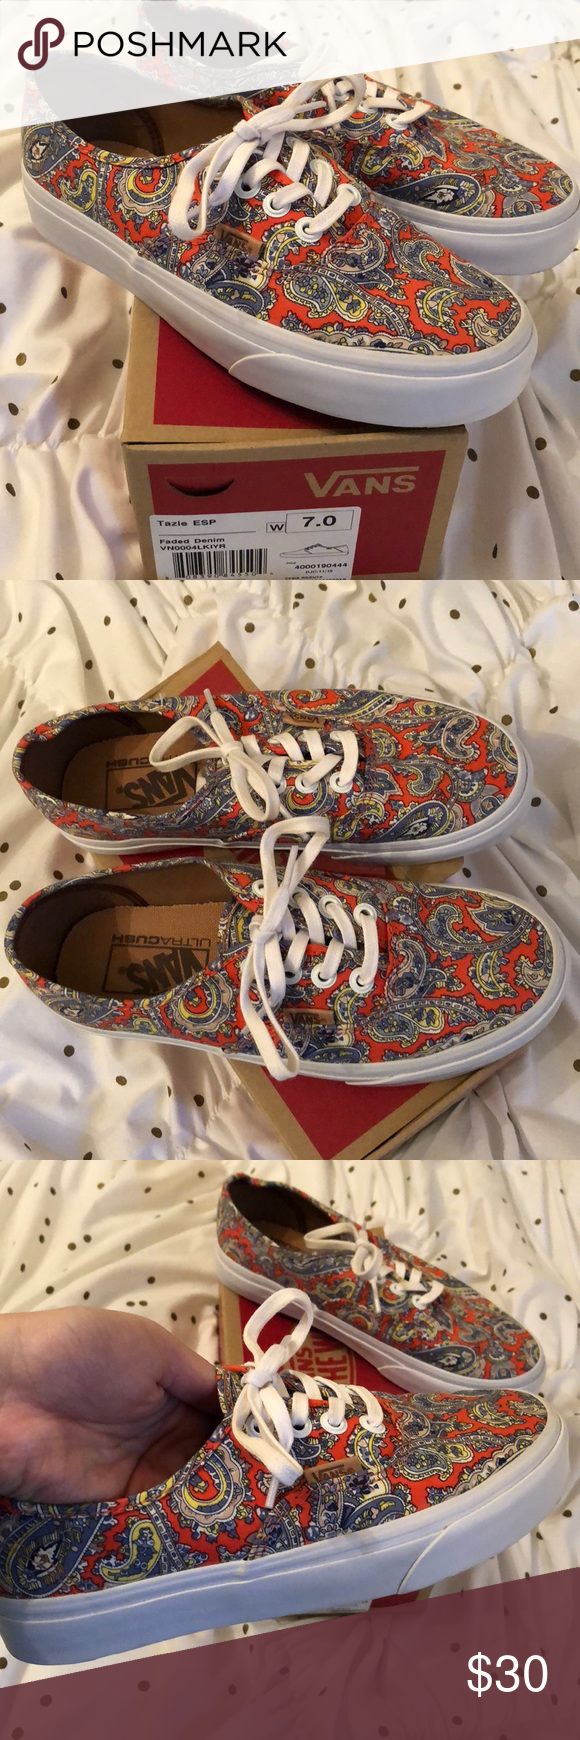 e5f1ab555f Vans Off The Wall Paisley s Vans Off The Wall